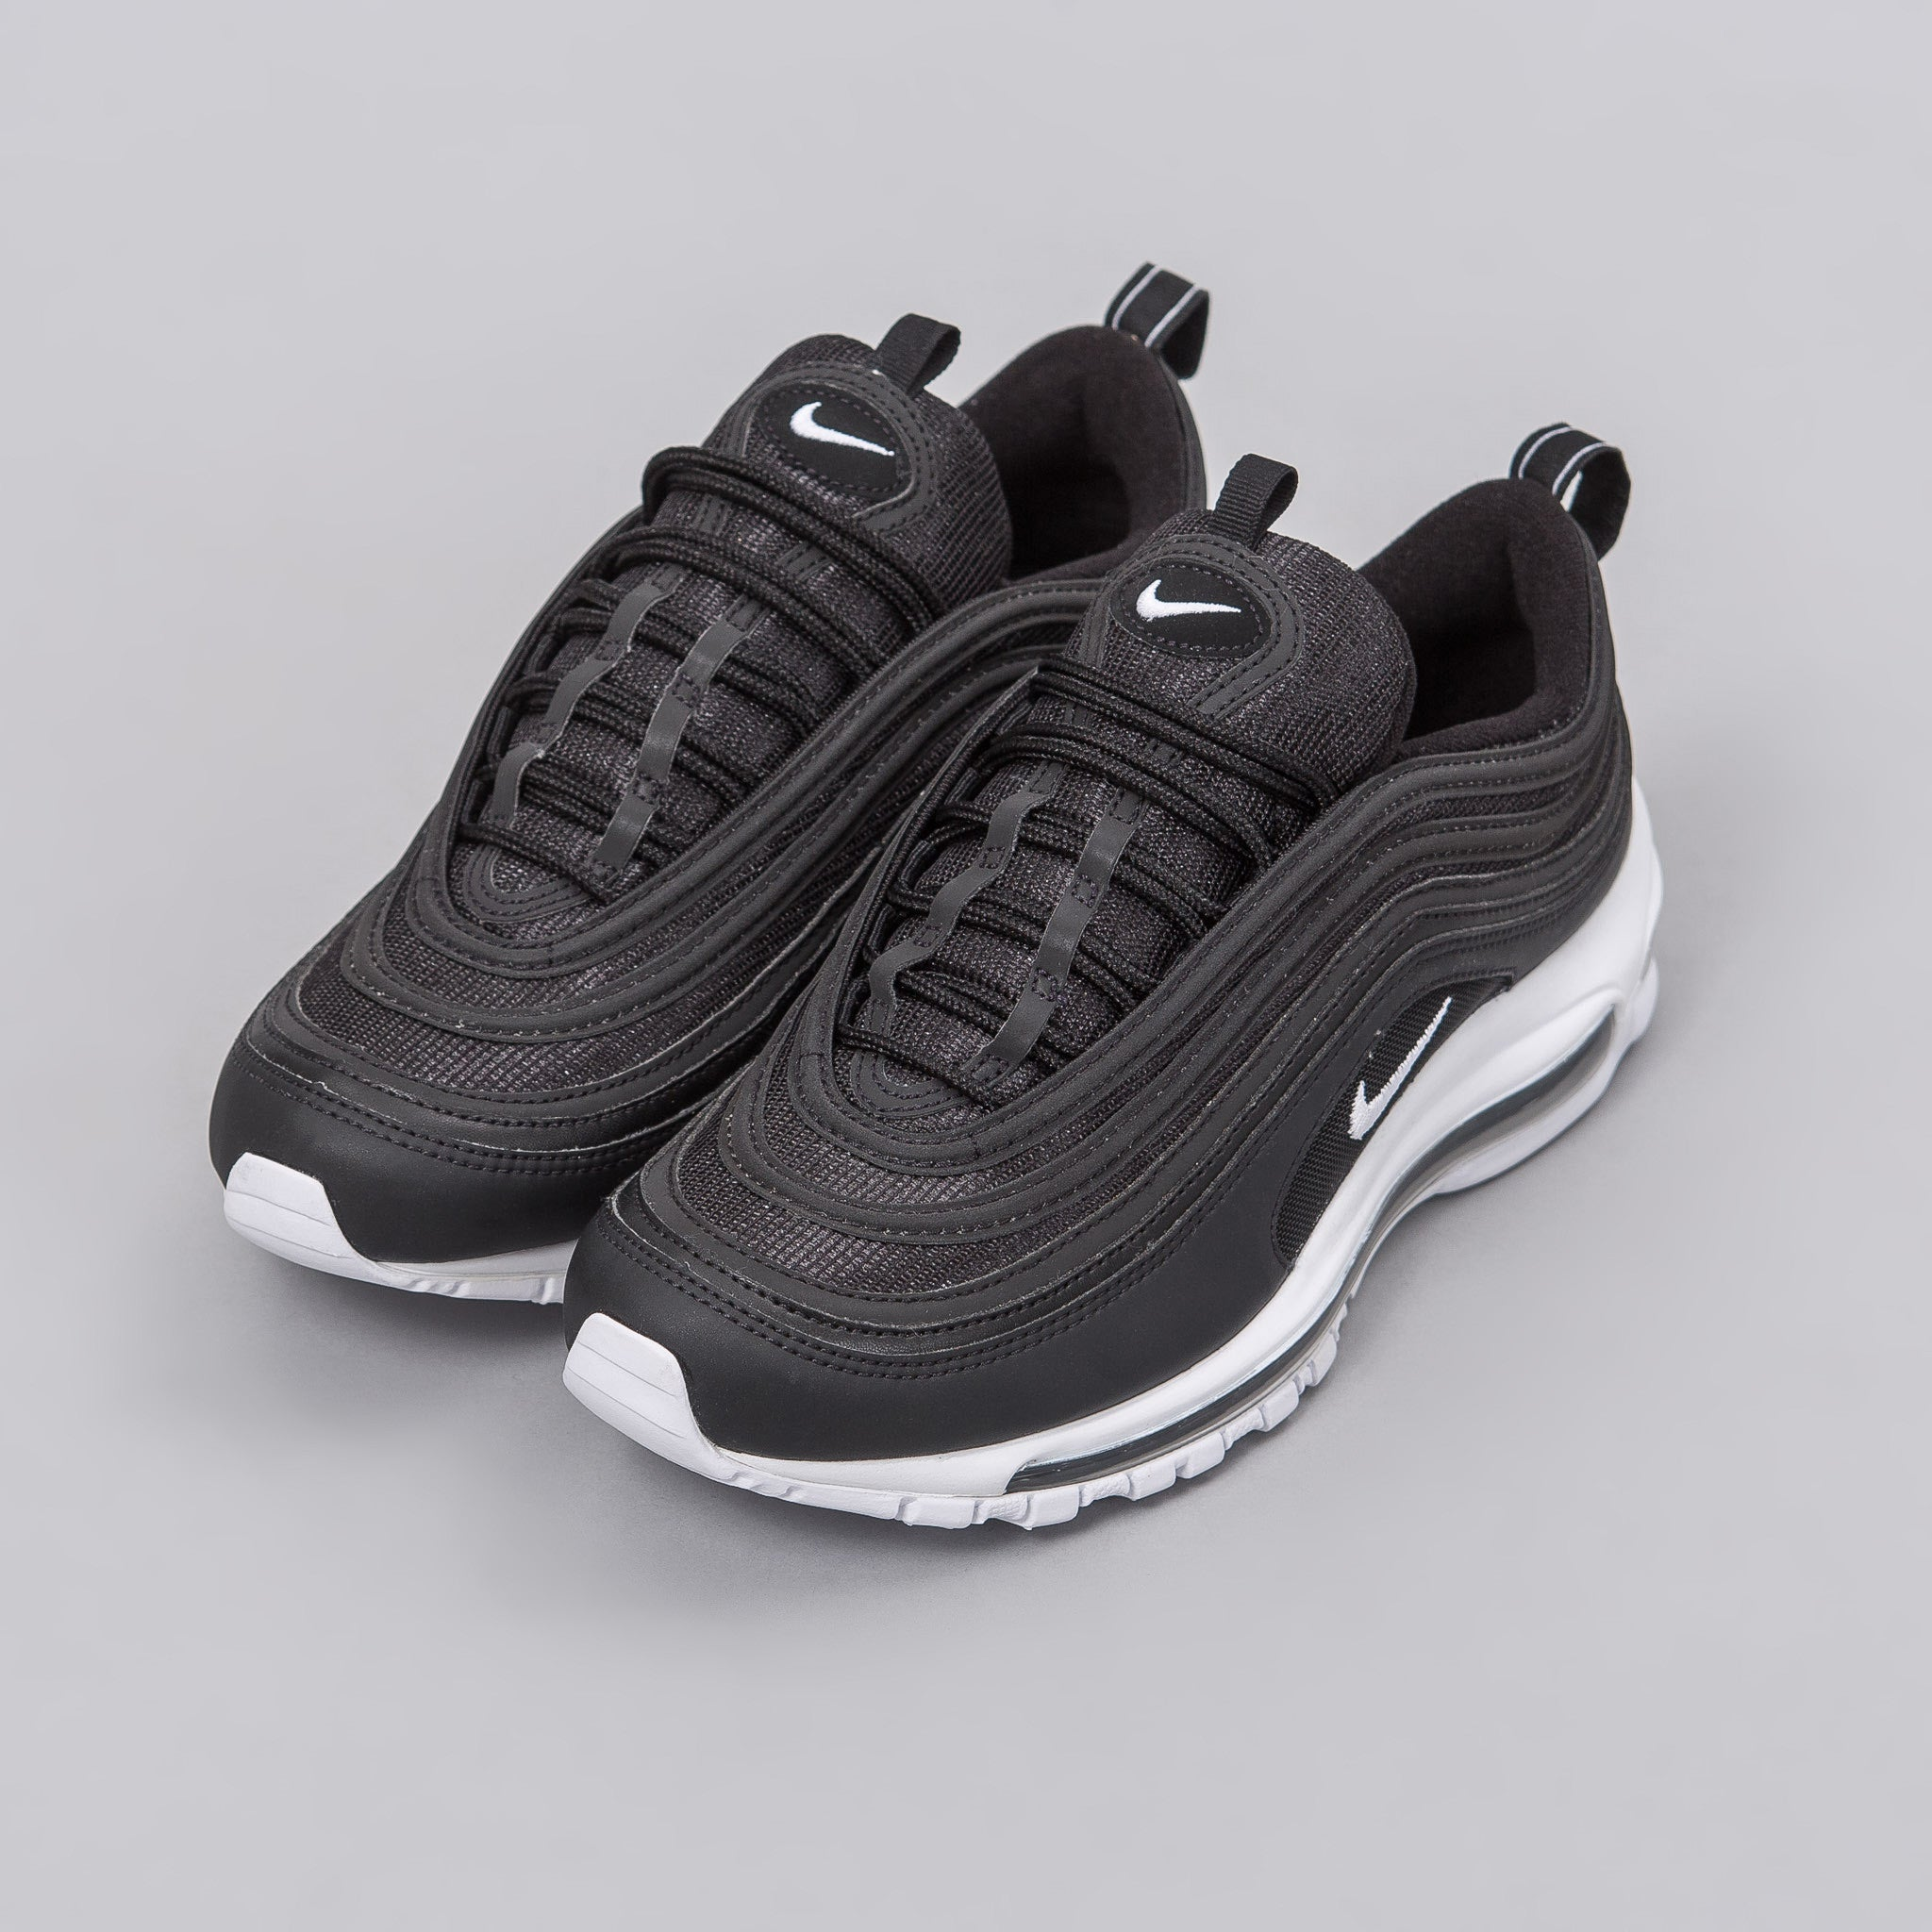 Cheap Nike Air Max 97 Premium Where To Buy